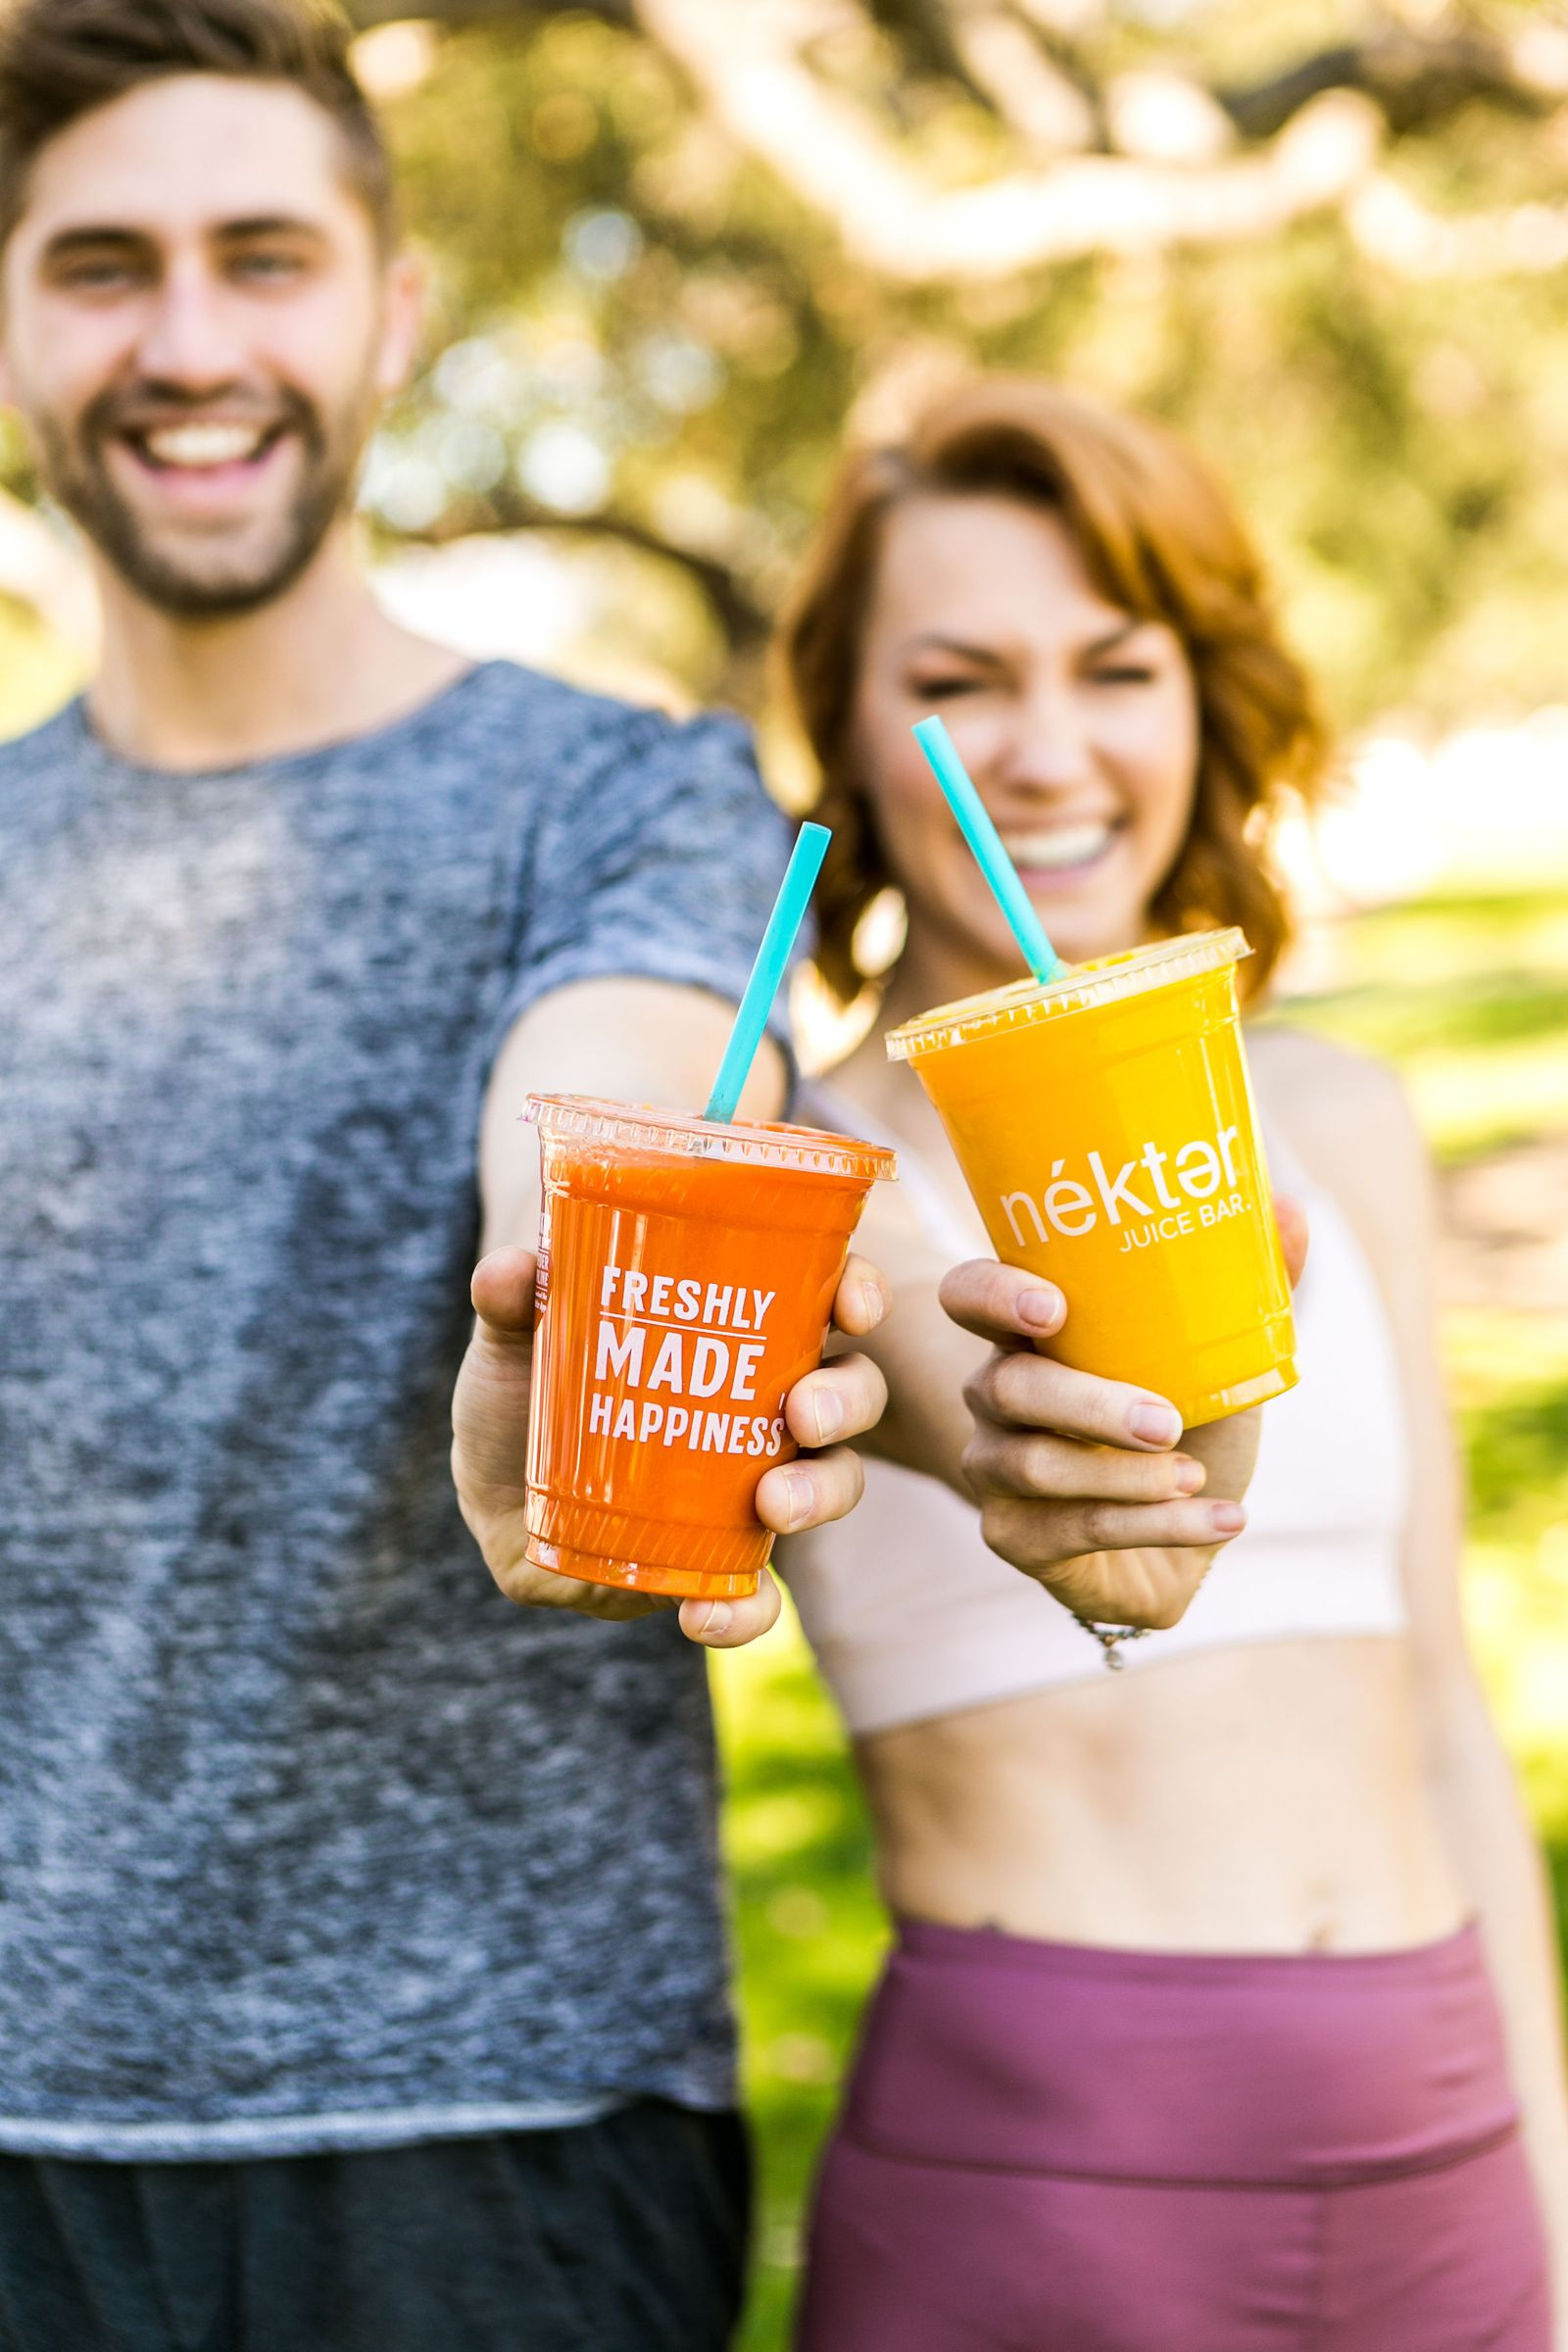 Nékter Juice Bar Among Top 4 Percent of Companies to Achieve Inc. 5000 Ranking for Fifth Consecutive Year